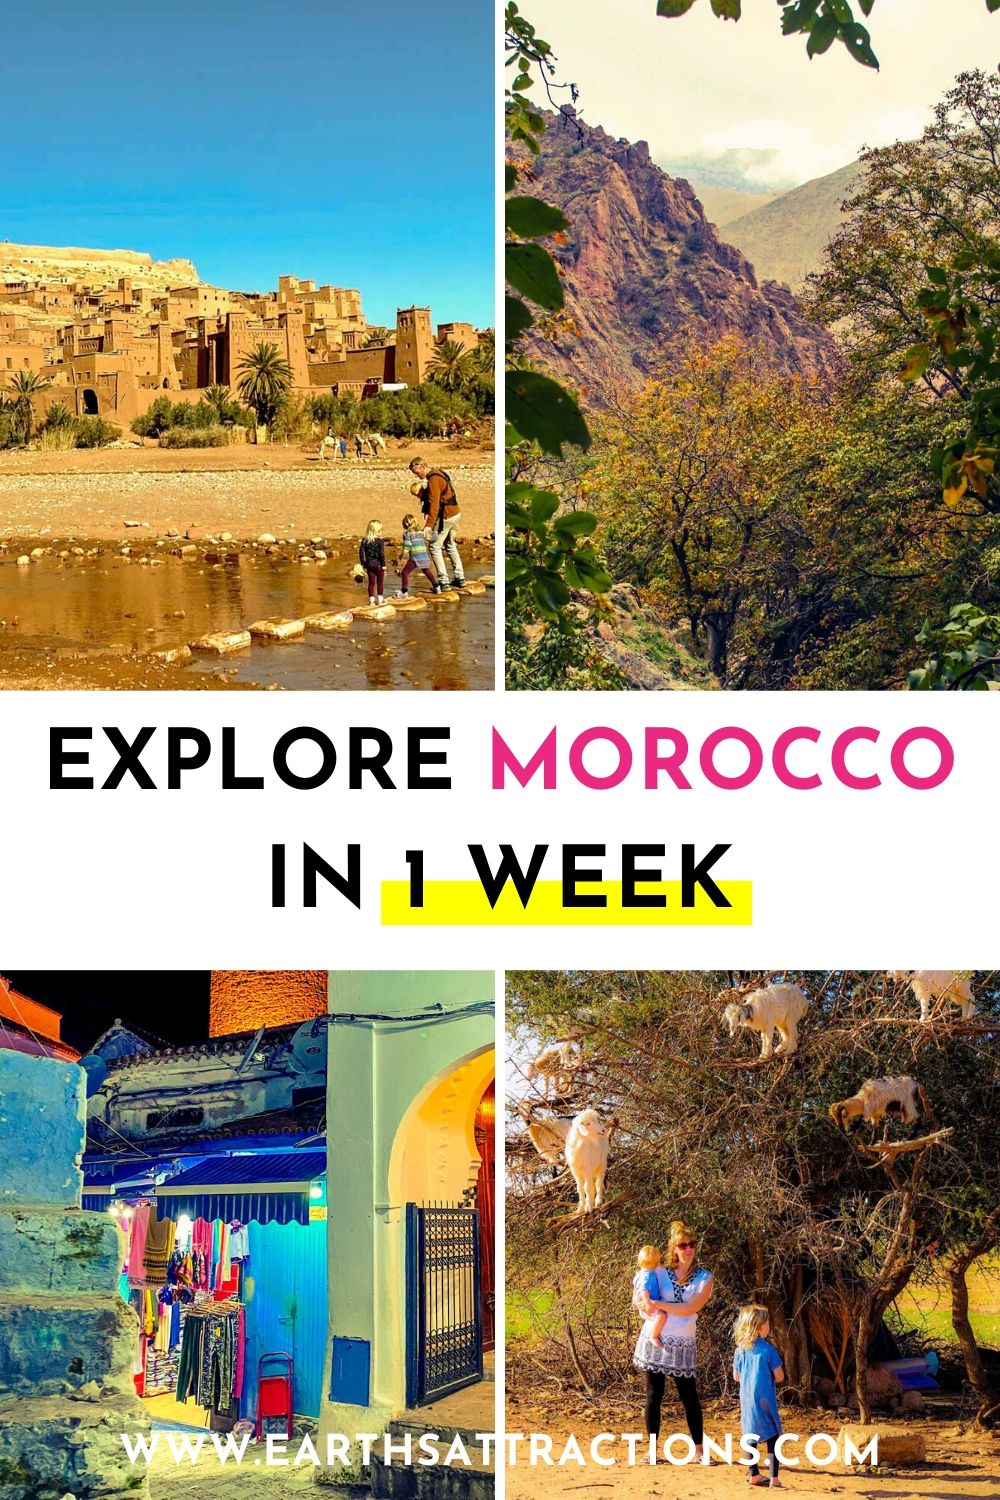 Explore Morocco in one week using this insider's 7-day Morocco itinerary. Discover the best places to visit in Morocco - Marrakech, Fes, Essaouira, High Atlas Mountains and many more! Create your Morocco bucket list now! Save this pin for later! #morocco #moroccoitinerary #itinerary #travelitinerary #africa #traveldestinations #earthsattractions